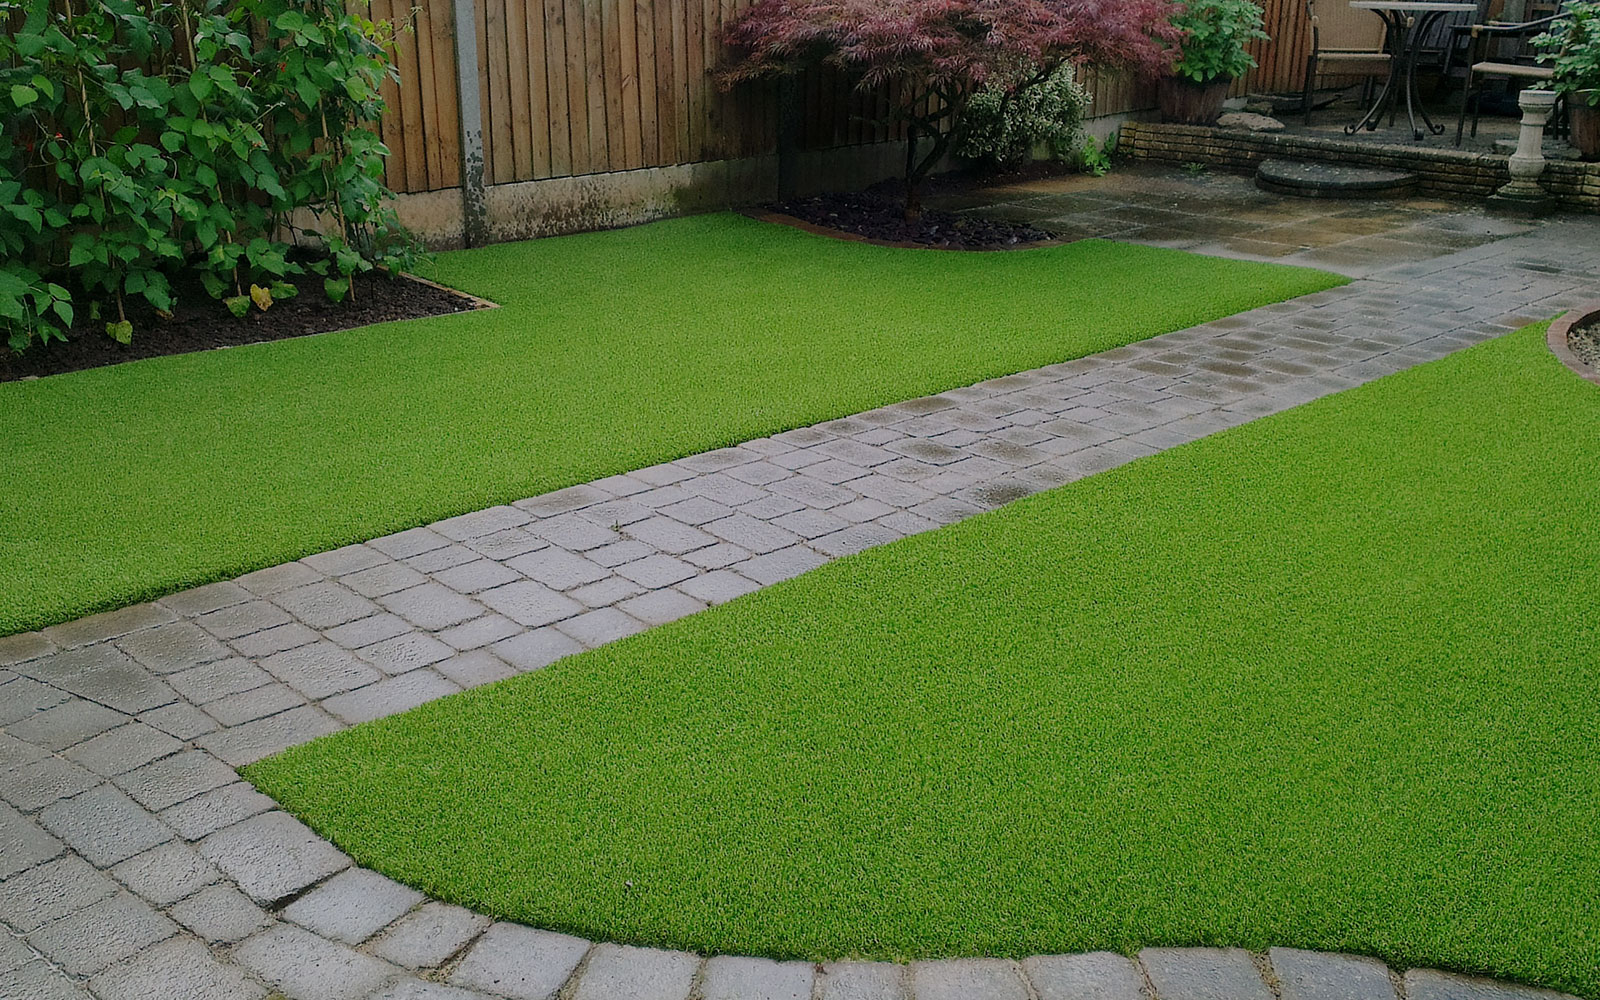 bg-easigrass rear garden